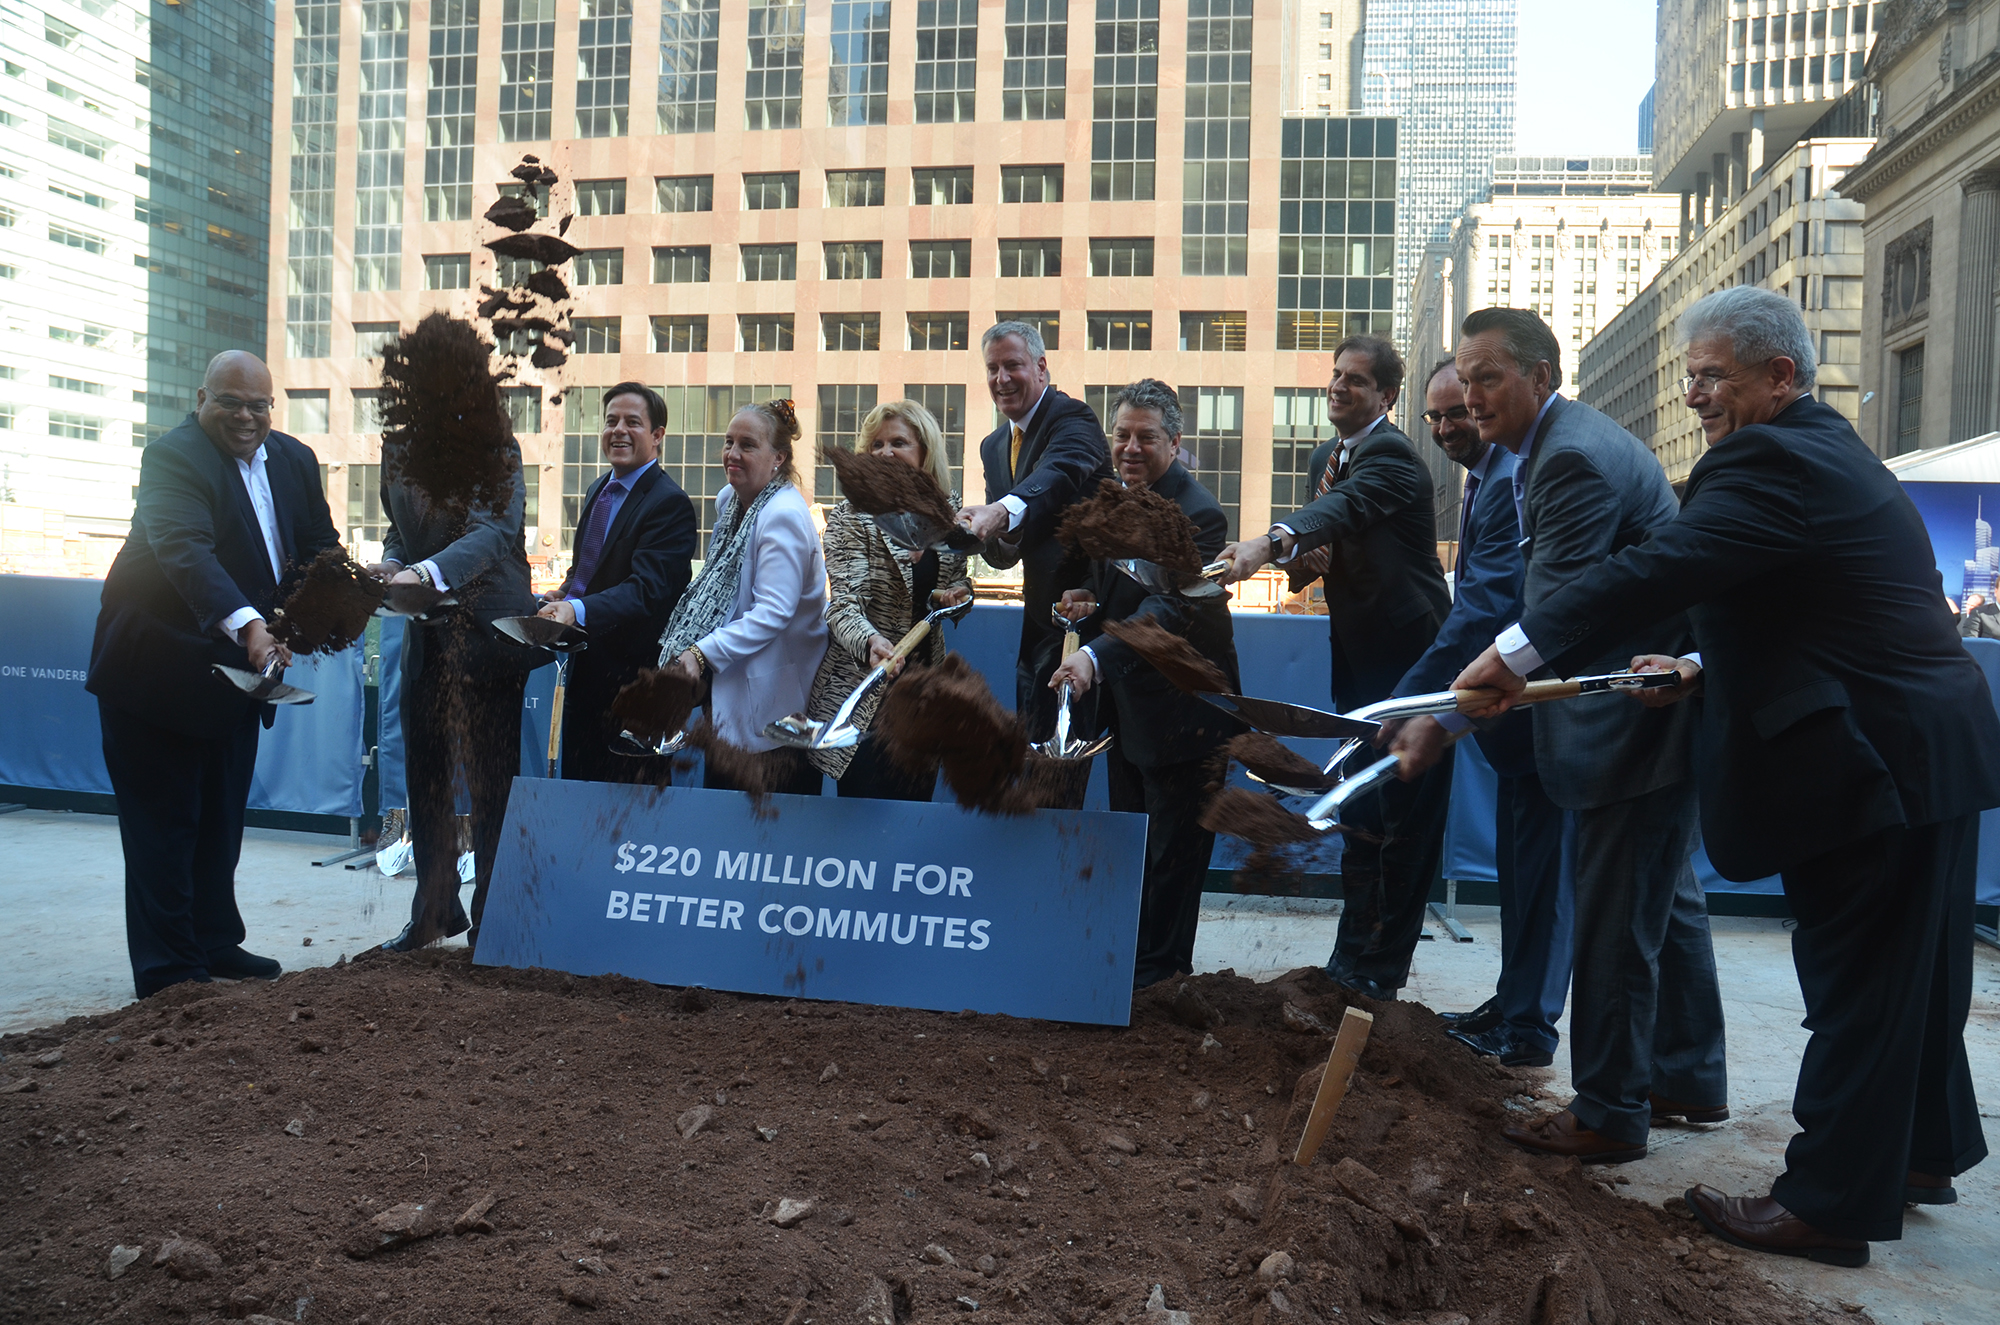 Mayor Bill de Blasio, SL Green's Mark Holliday, and others break ground for One Vanderbilt. All photos by the author